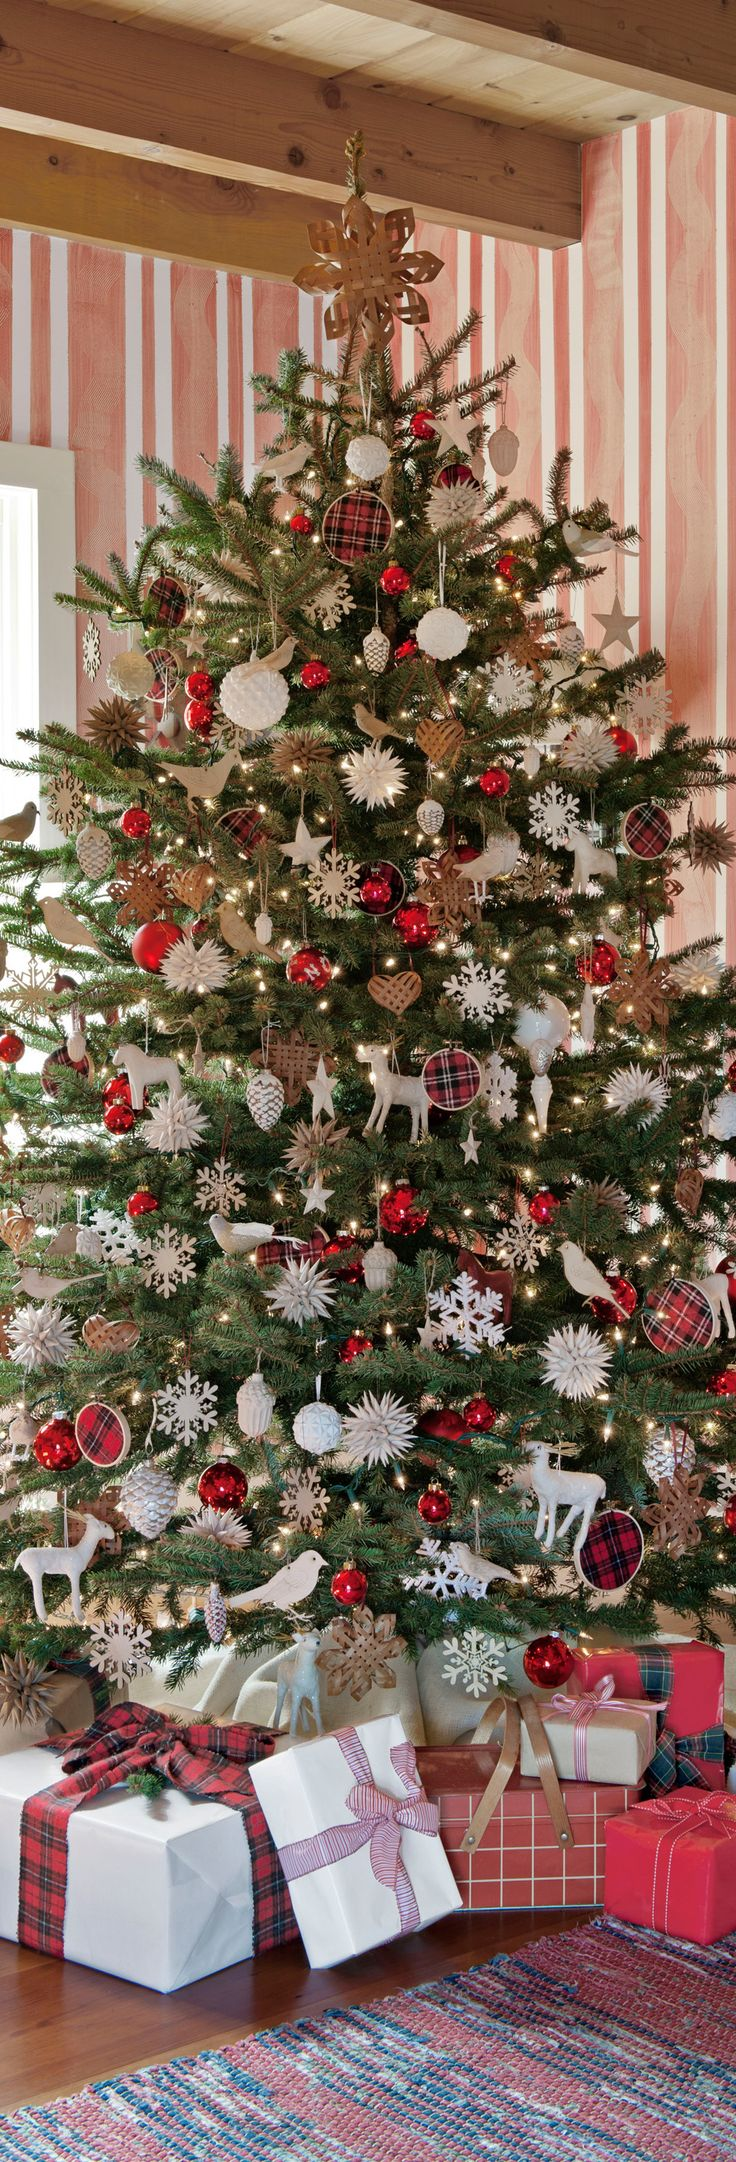 Classic Red & Green Christmas Tree with Plaid Accents